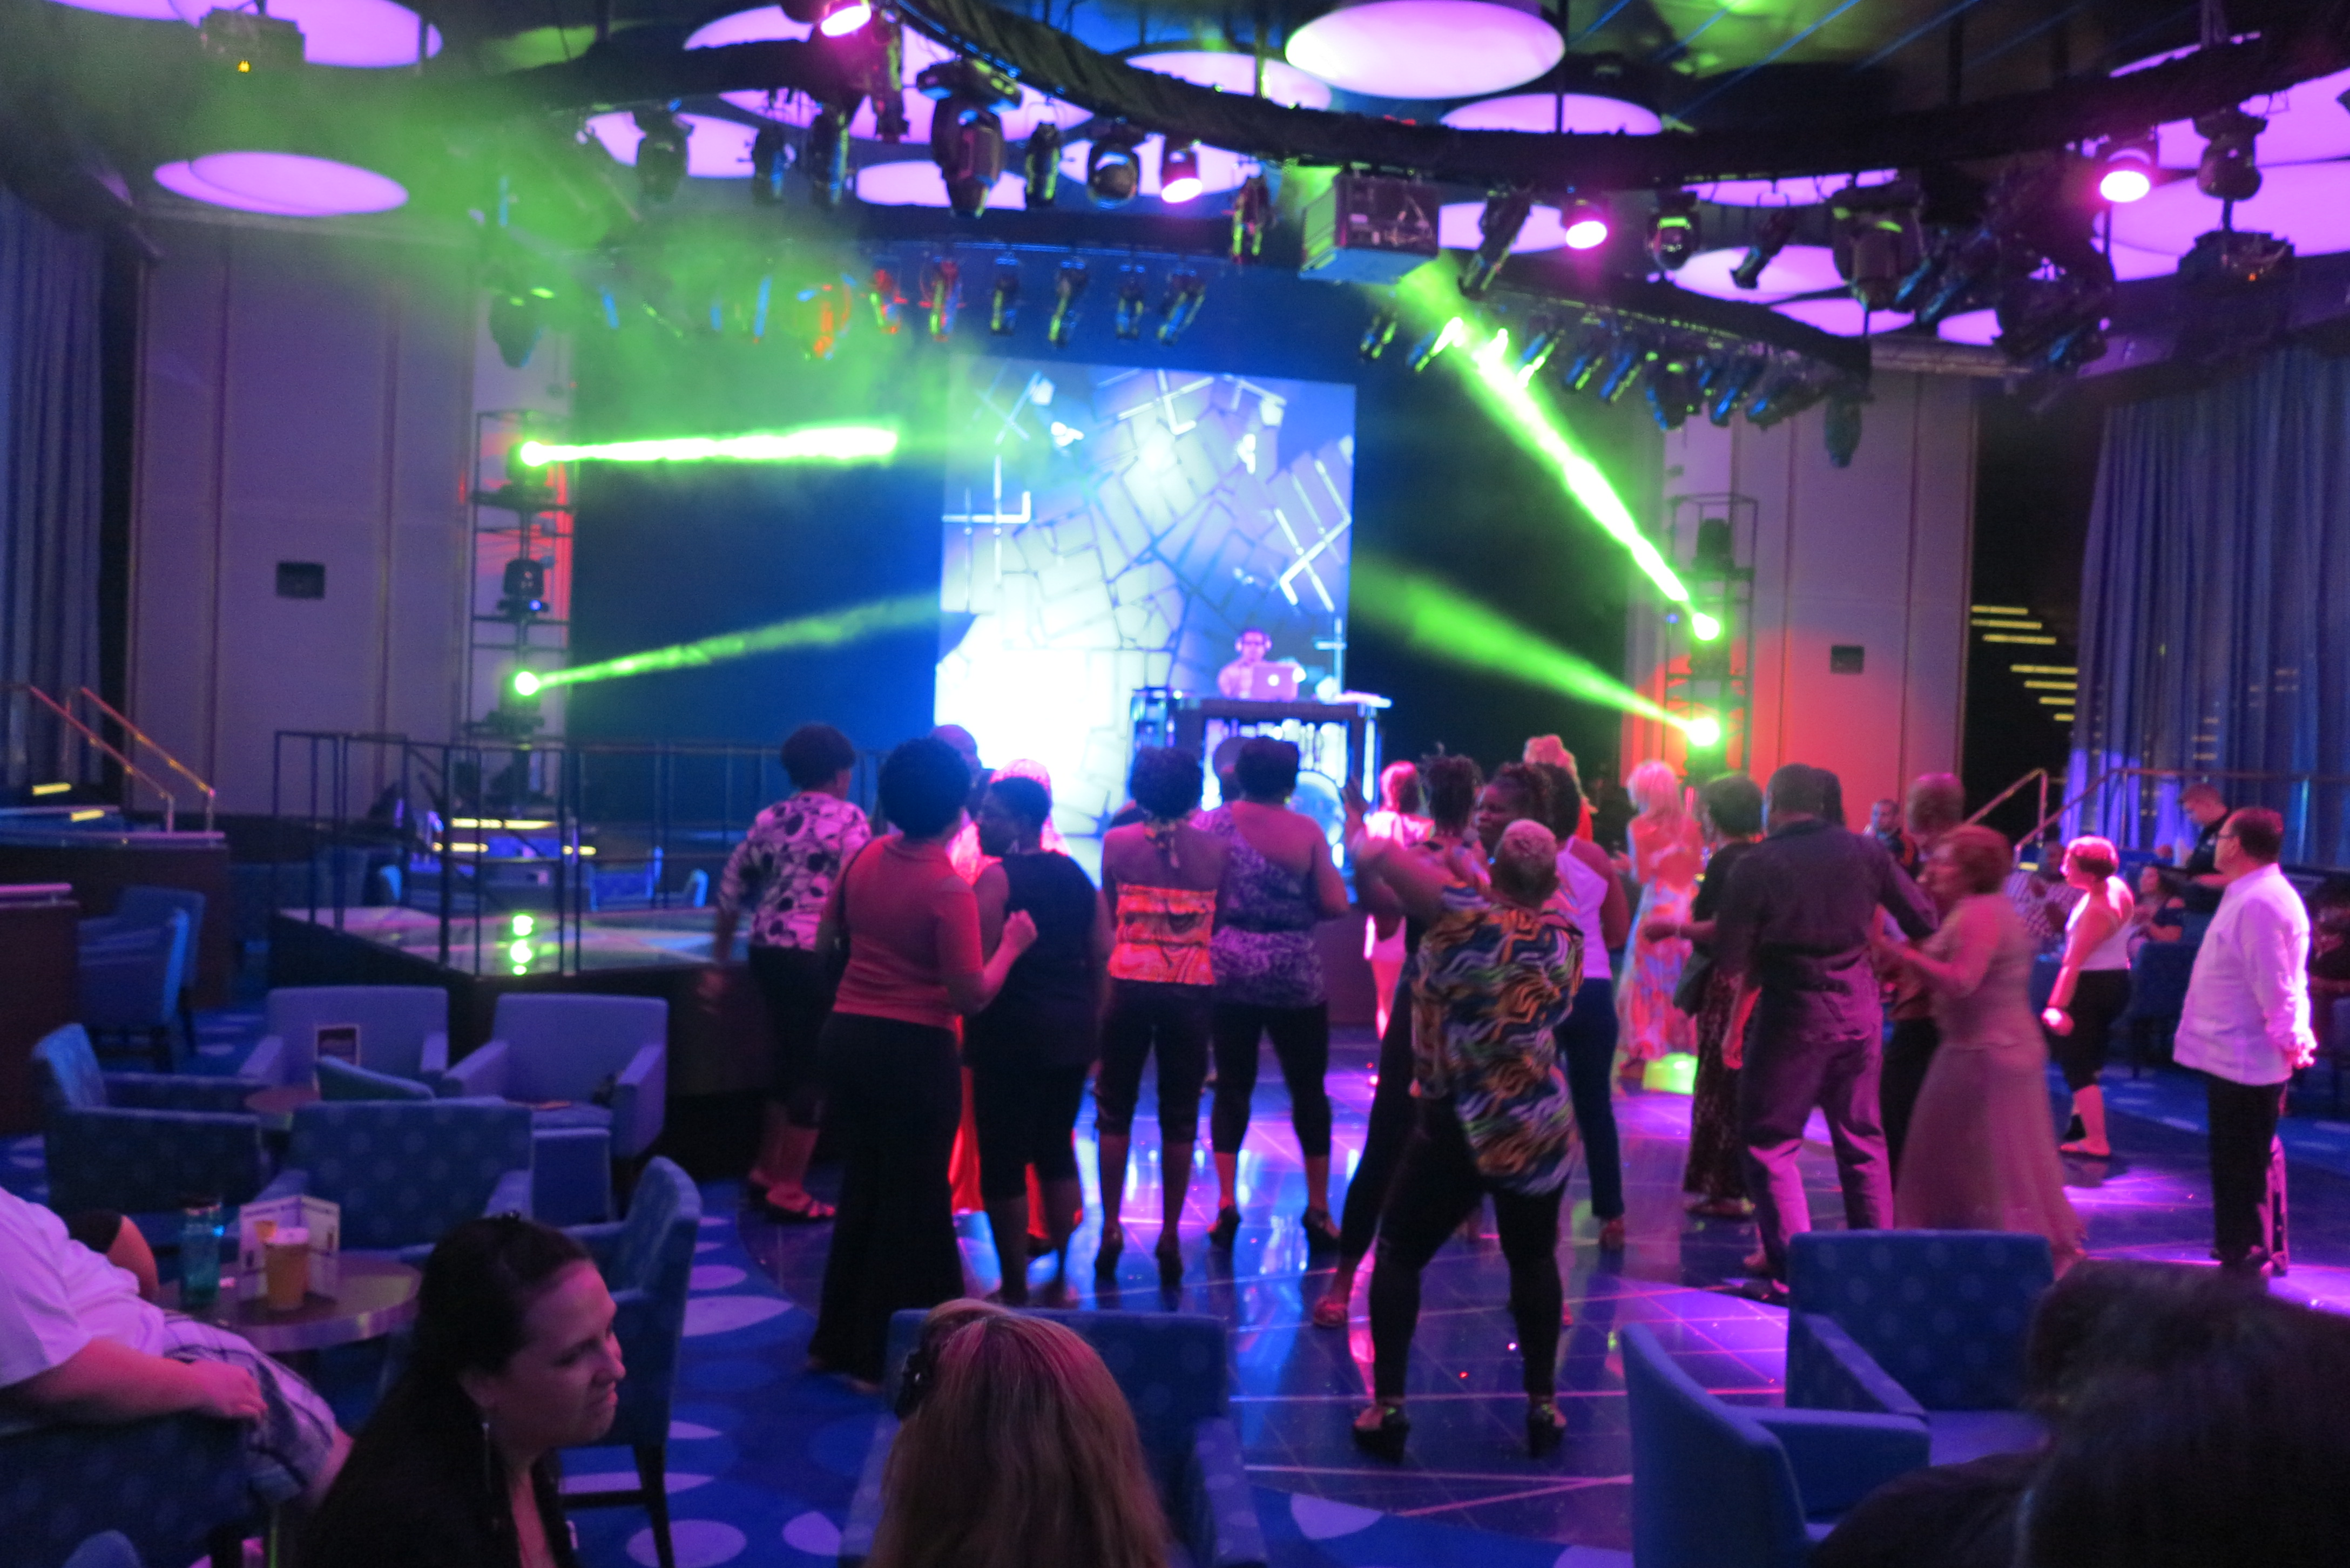 Dancing the night away: The evening ends at the Liquid Lounge night club. What will tomorrow bring?